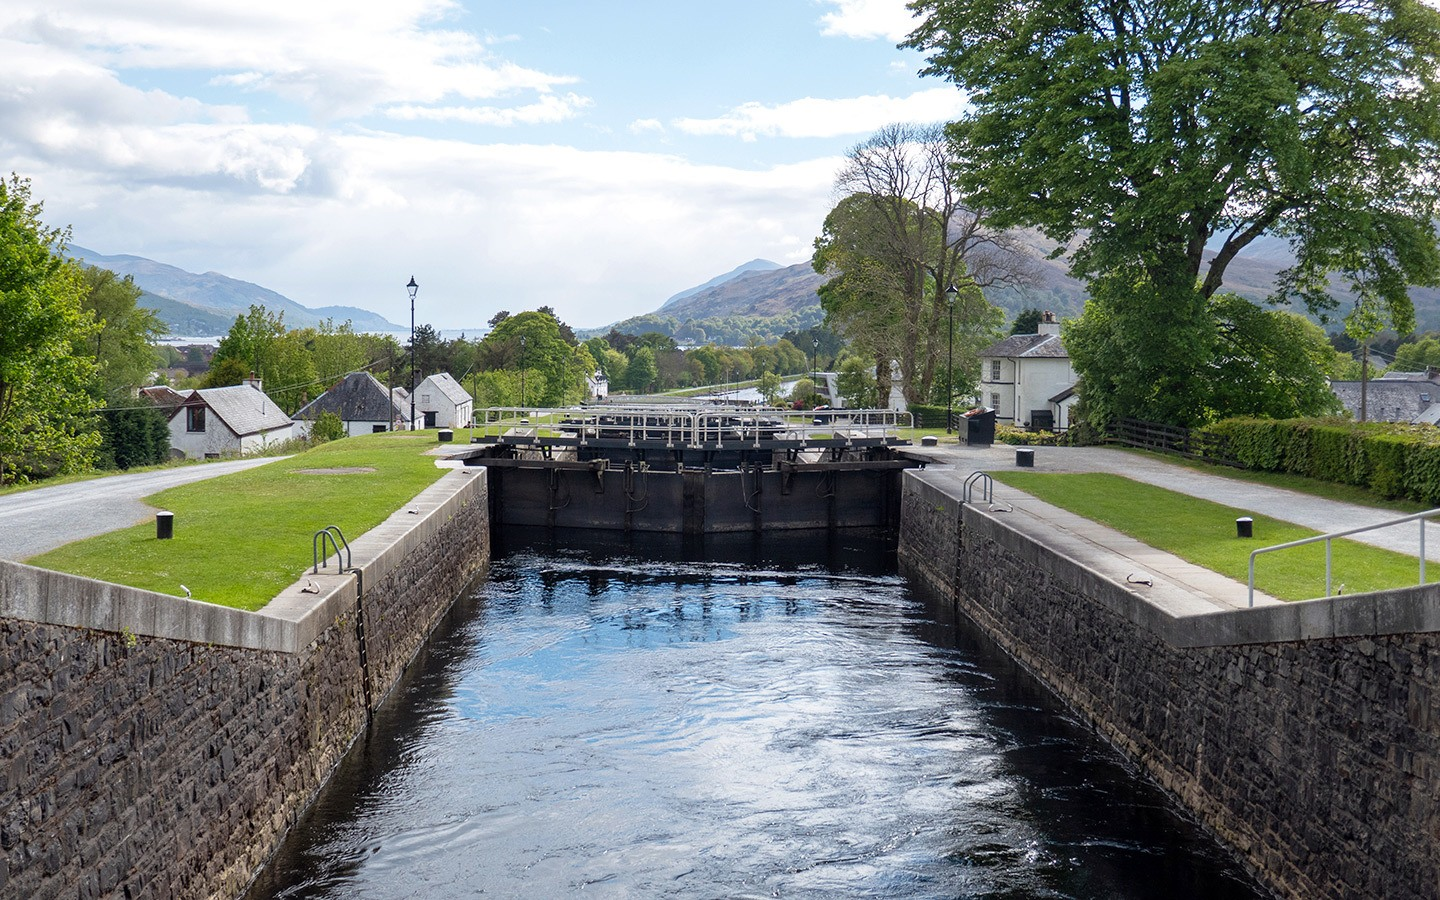 Neptune's Staircase canal locks near Fort William in Scotland